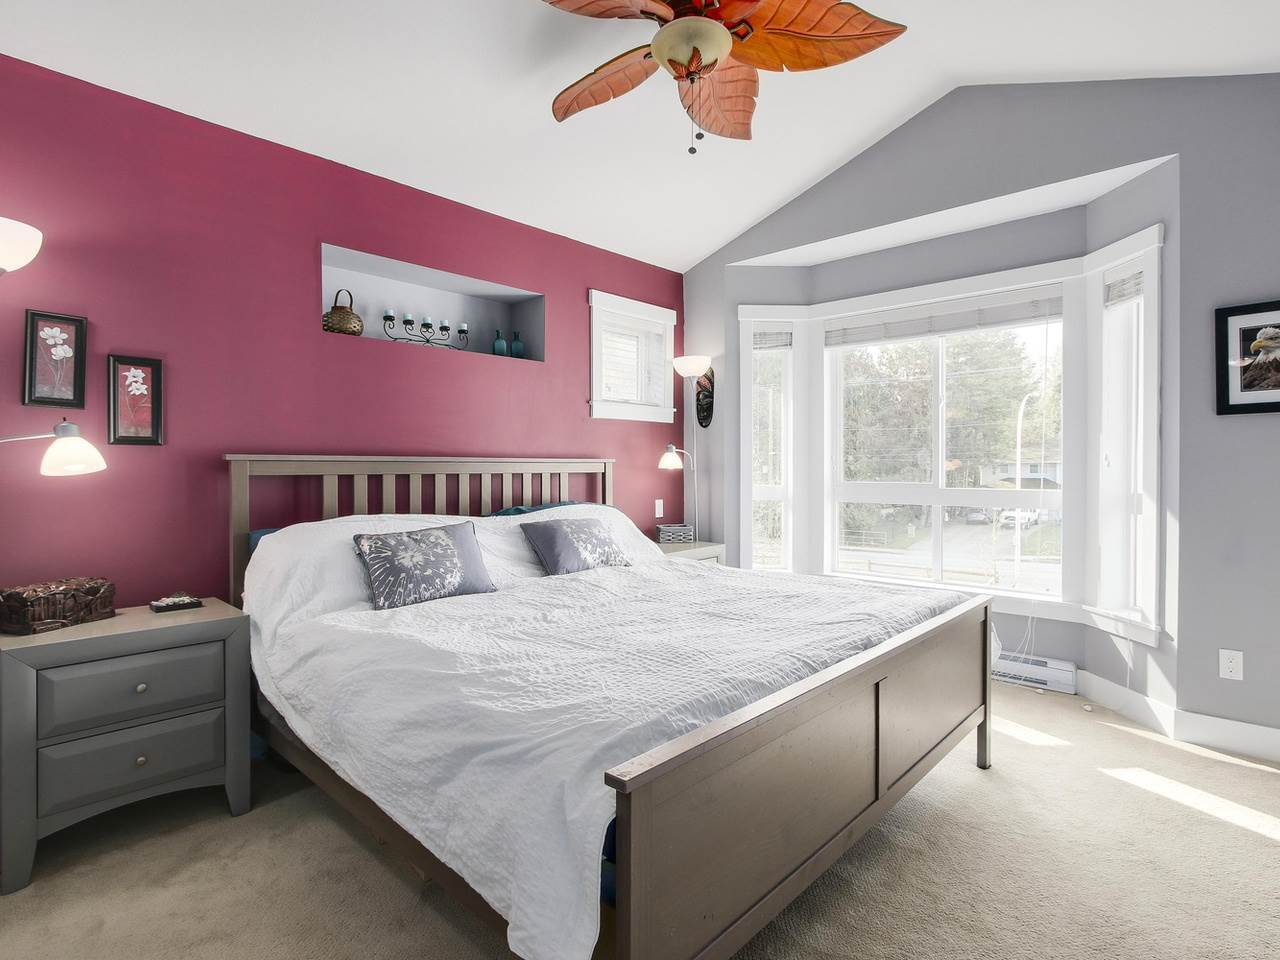 """Photo 10: Photos: 81 14433 60 Avenue in Surrey: Sullivan Station Townhouse for sale in """"Brixton"""" : MLS®# R2152345"""